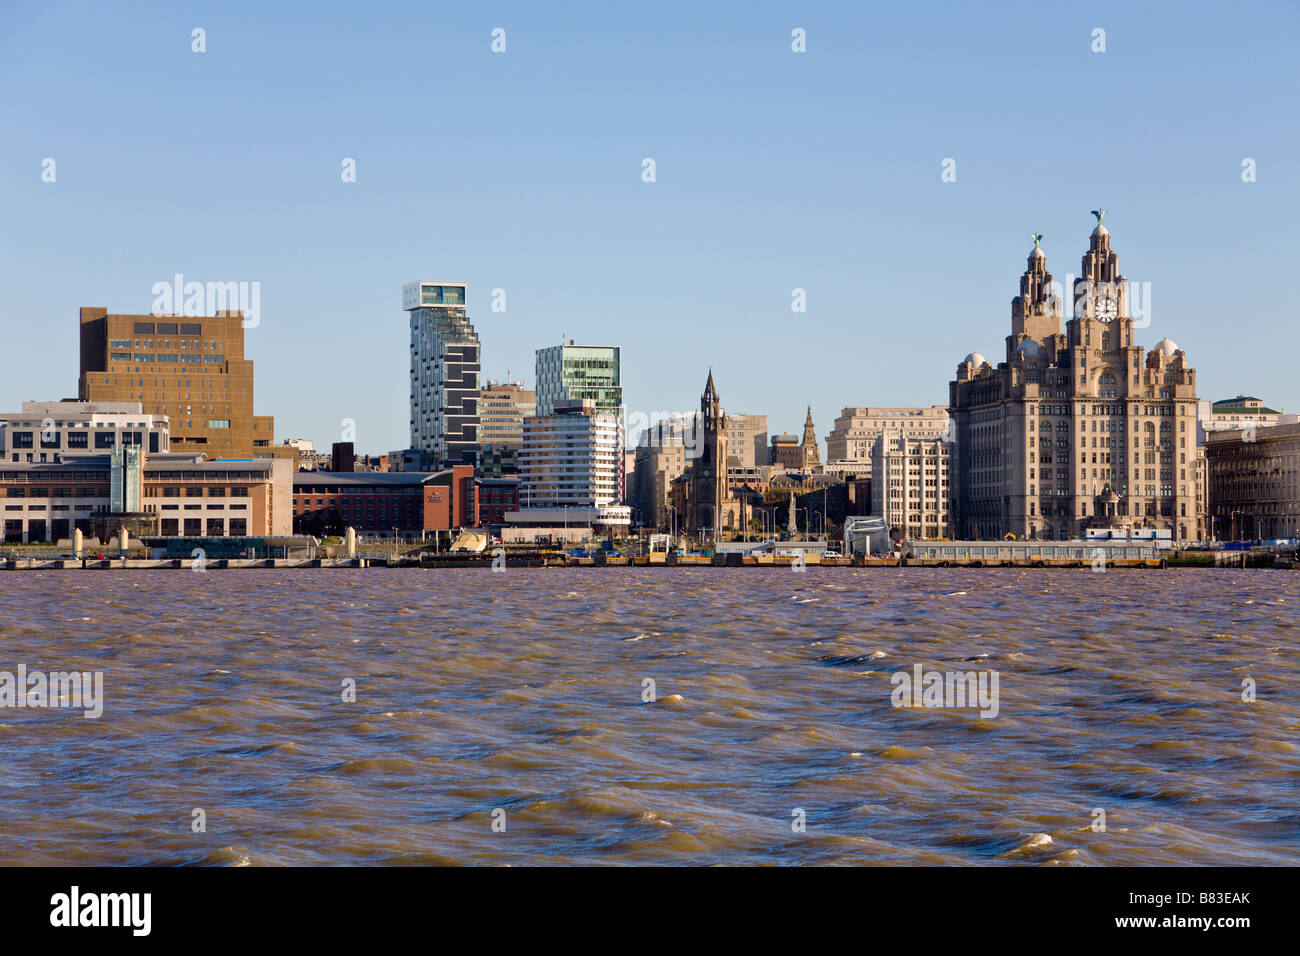 Skyline and River Mersey, Liverpool, Merseyside, England - Stock Image